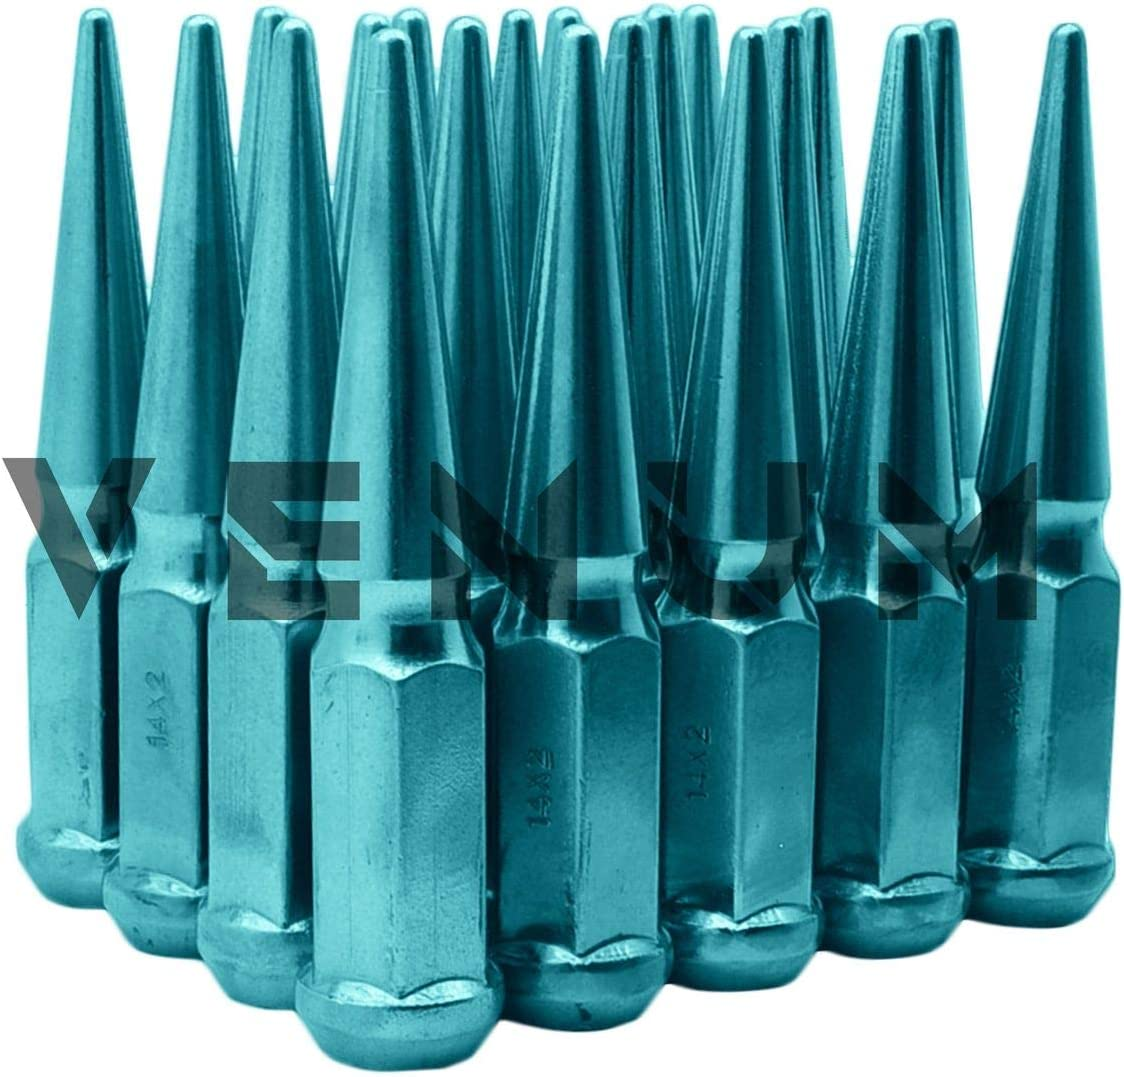 Venum wheel accessories 20 Pc M14x1.5 Candy Teal Spike Lug Nuts Powder Coated 4.5 Tall Compatible with 2015-2020 Ford Mustang GT 5.0 Shebly W//Aftermarket Wheels